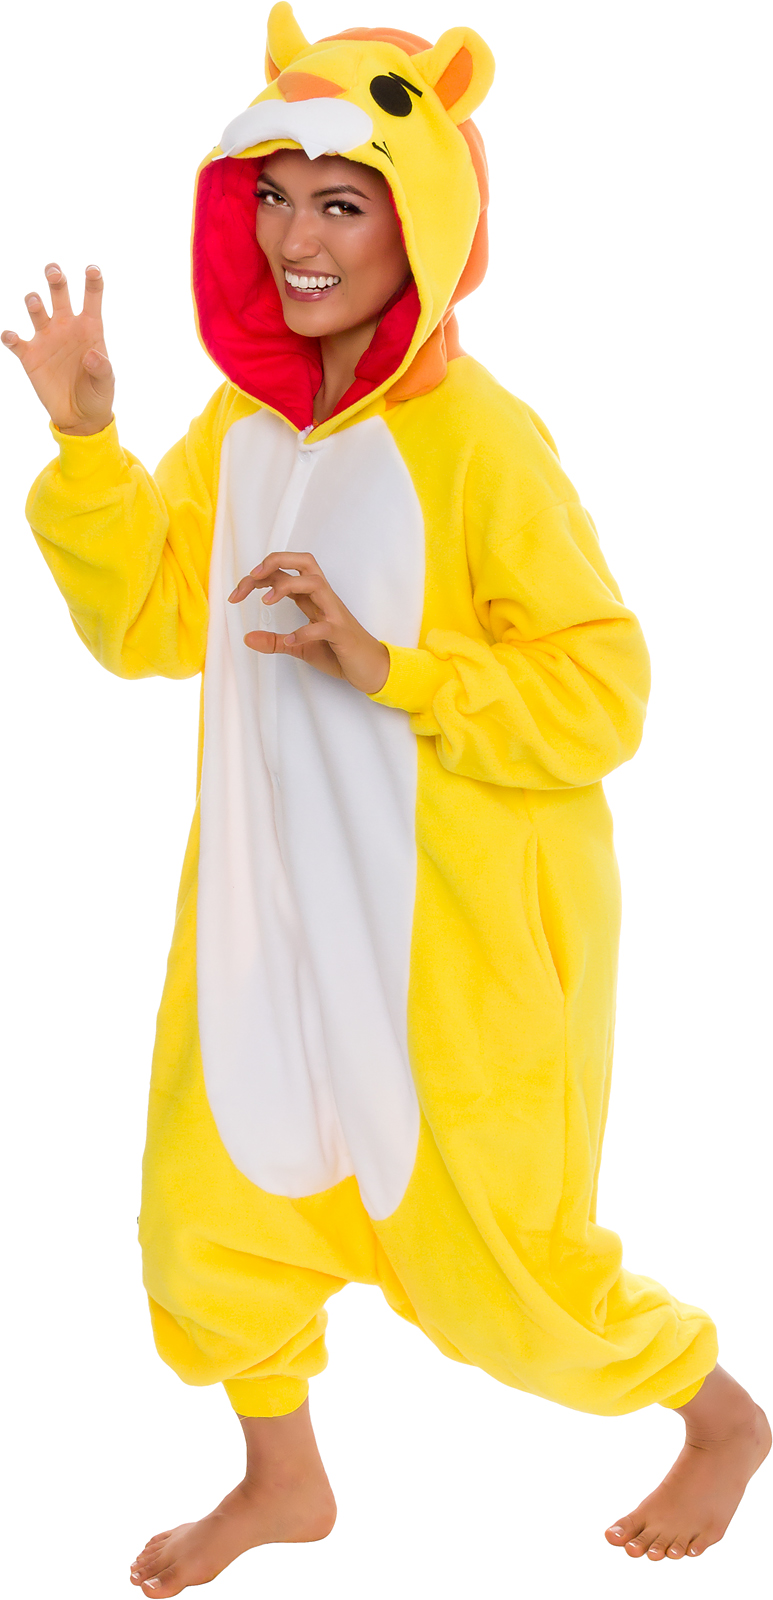 b305691fa2 Details about SILVER LILLY Unisex Adult Plush Animal Cosplay Costume Pajamas  (Lion)